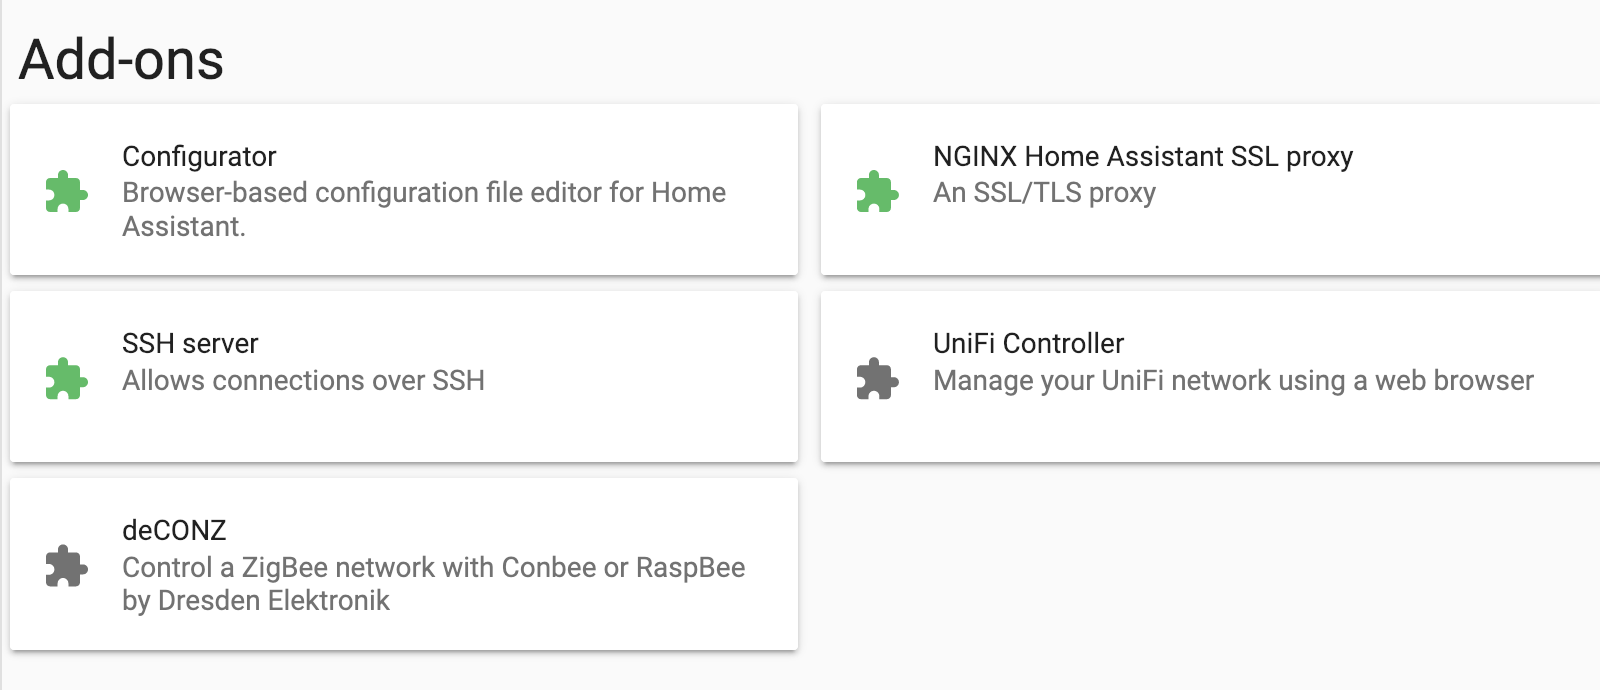 UniFi Controller stucks on startup · Issue #11 · hassio